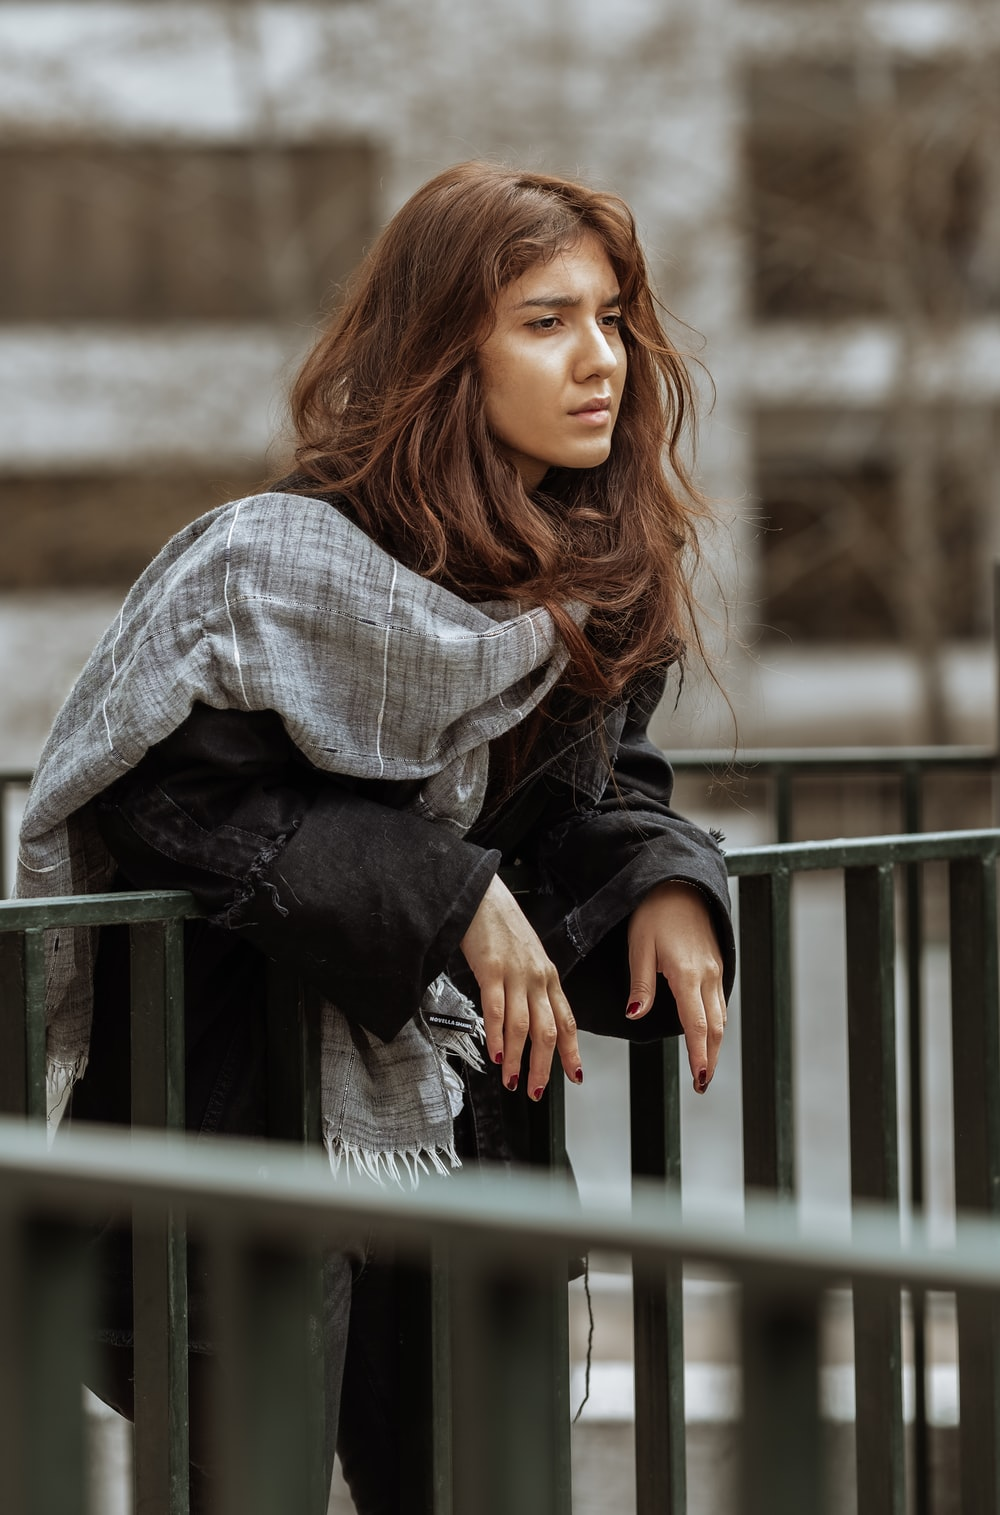 woman in white and black plaid long sleeve shirt and black pants sitting on gray wooden